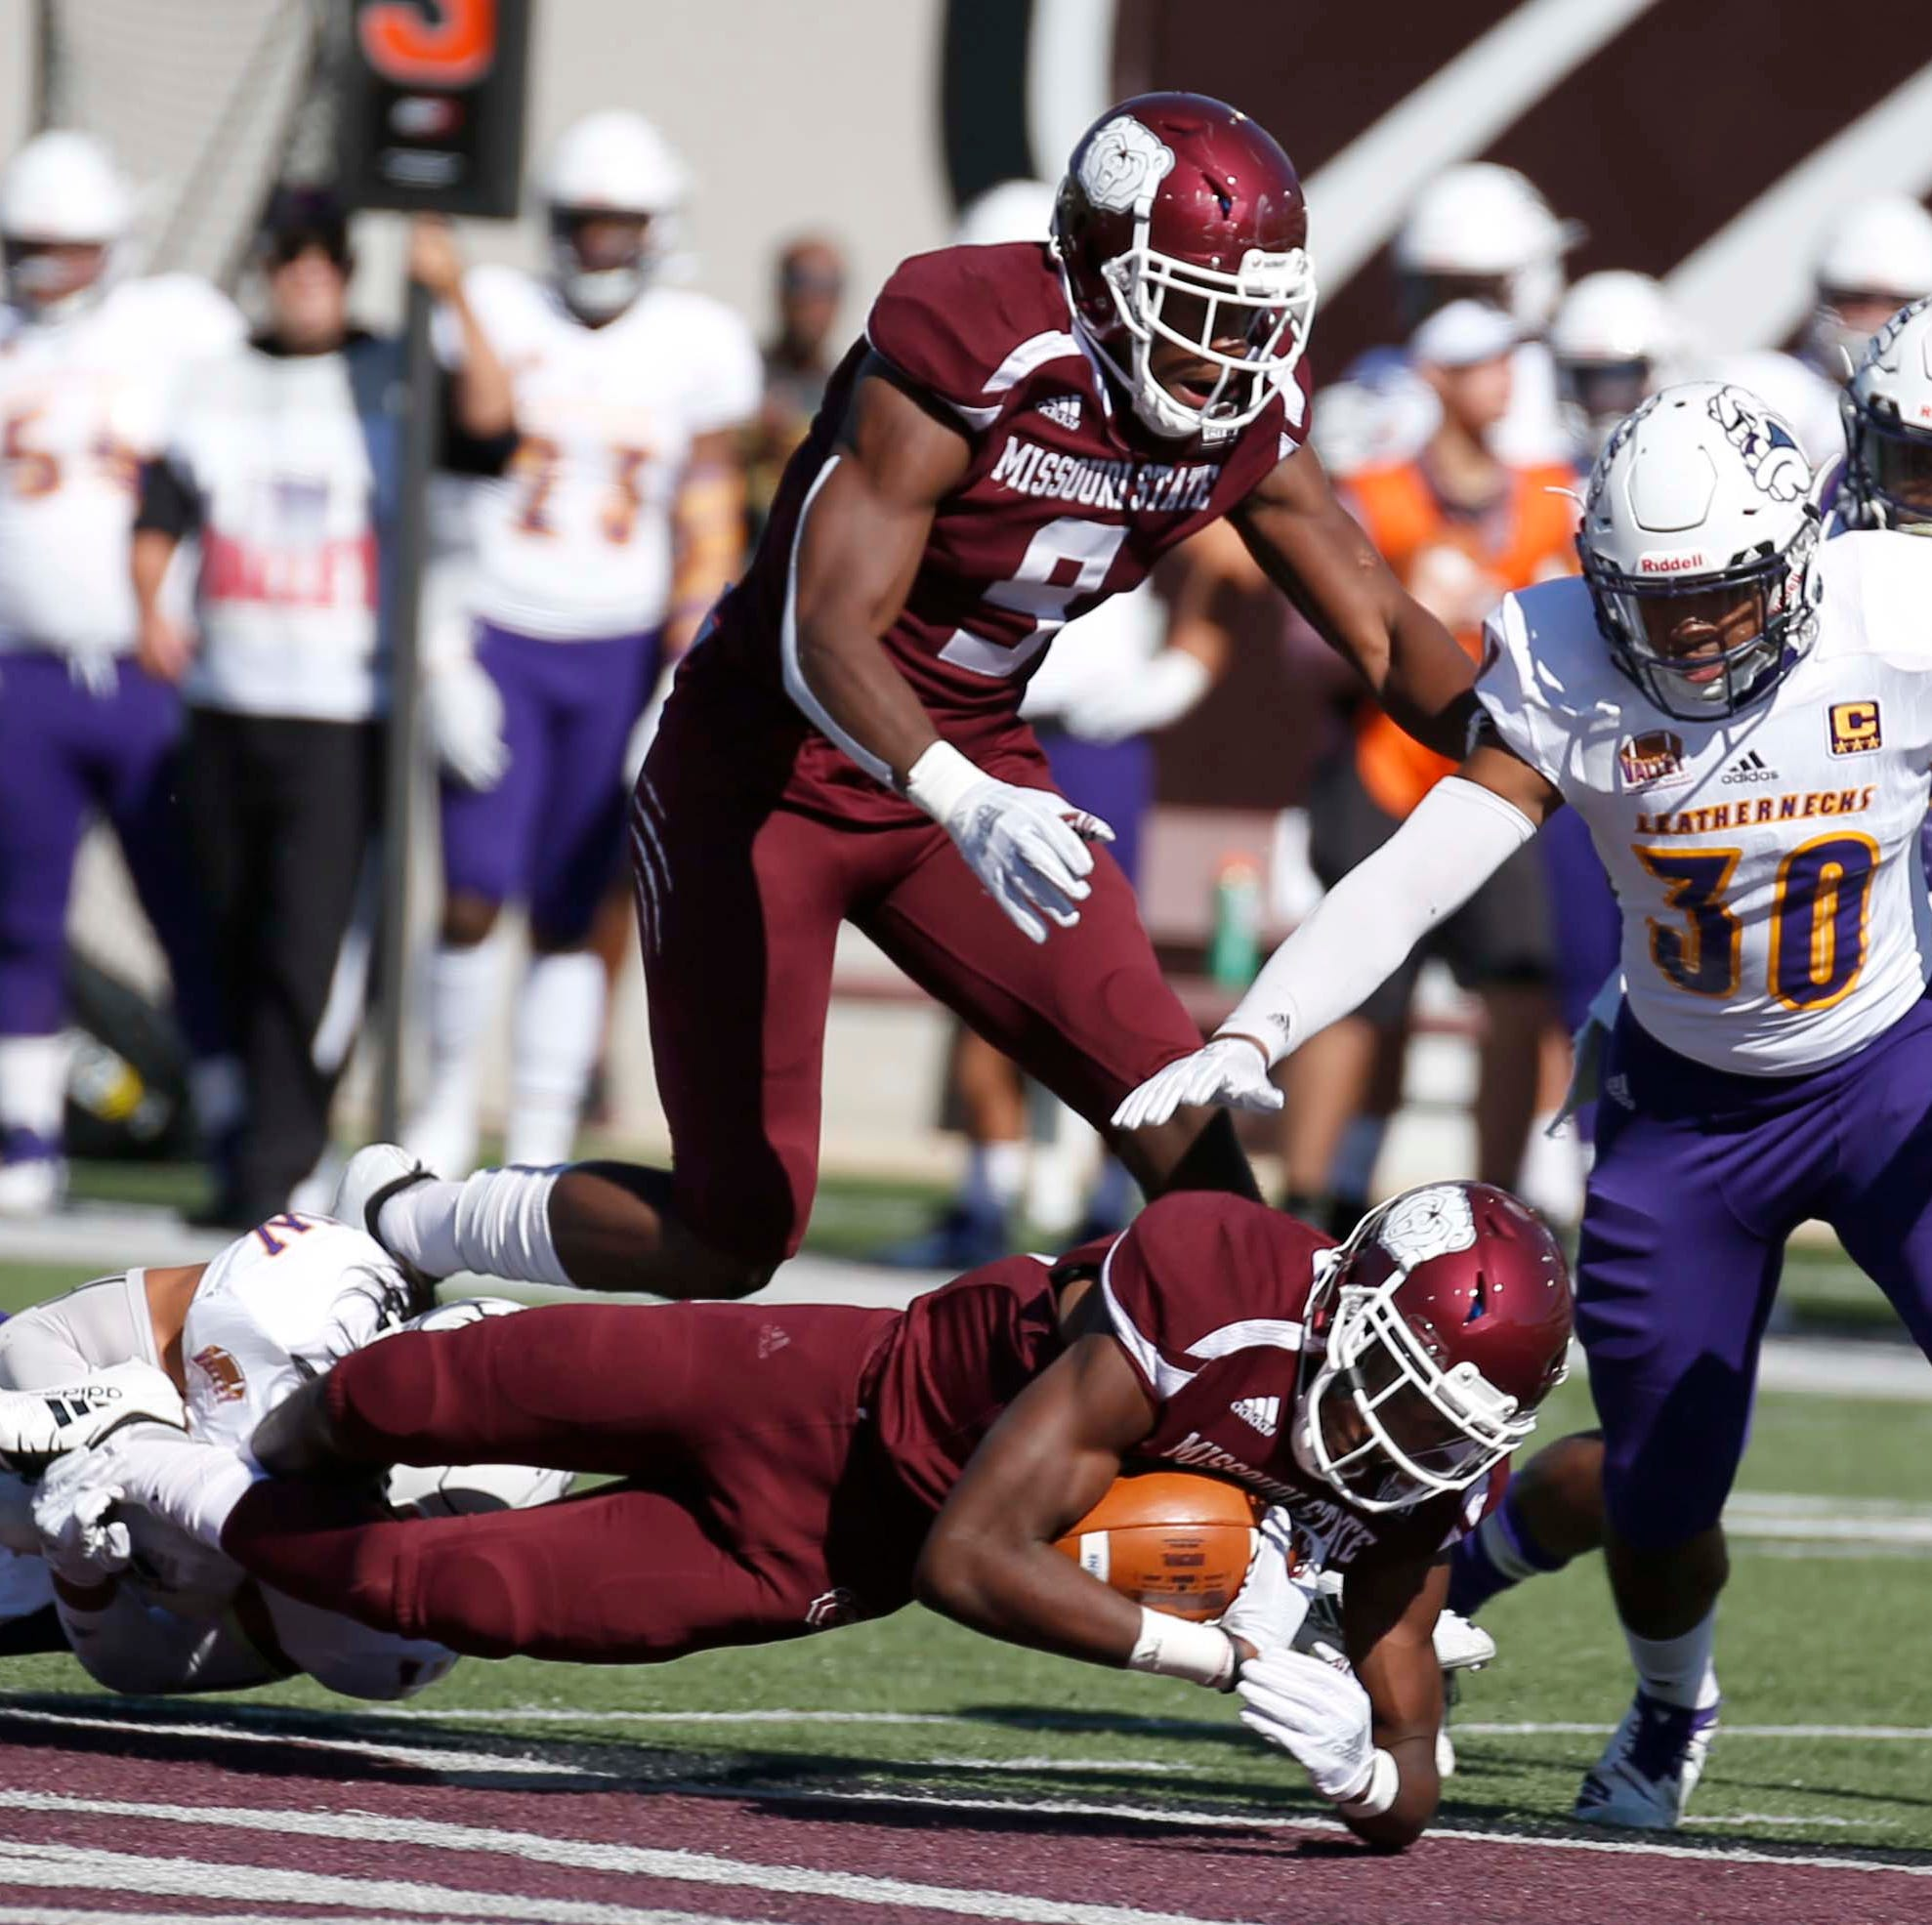 Promising season takes hit after Missouri State gets blown out by Western Illinois